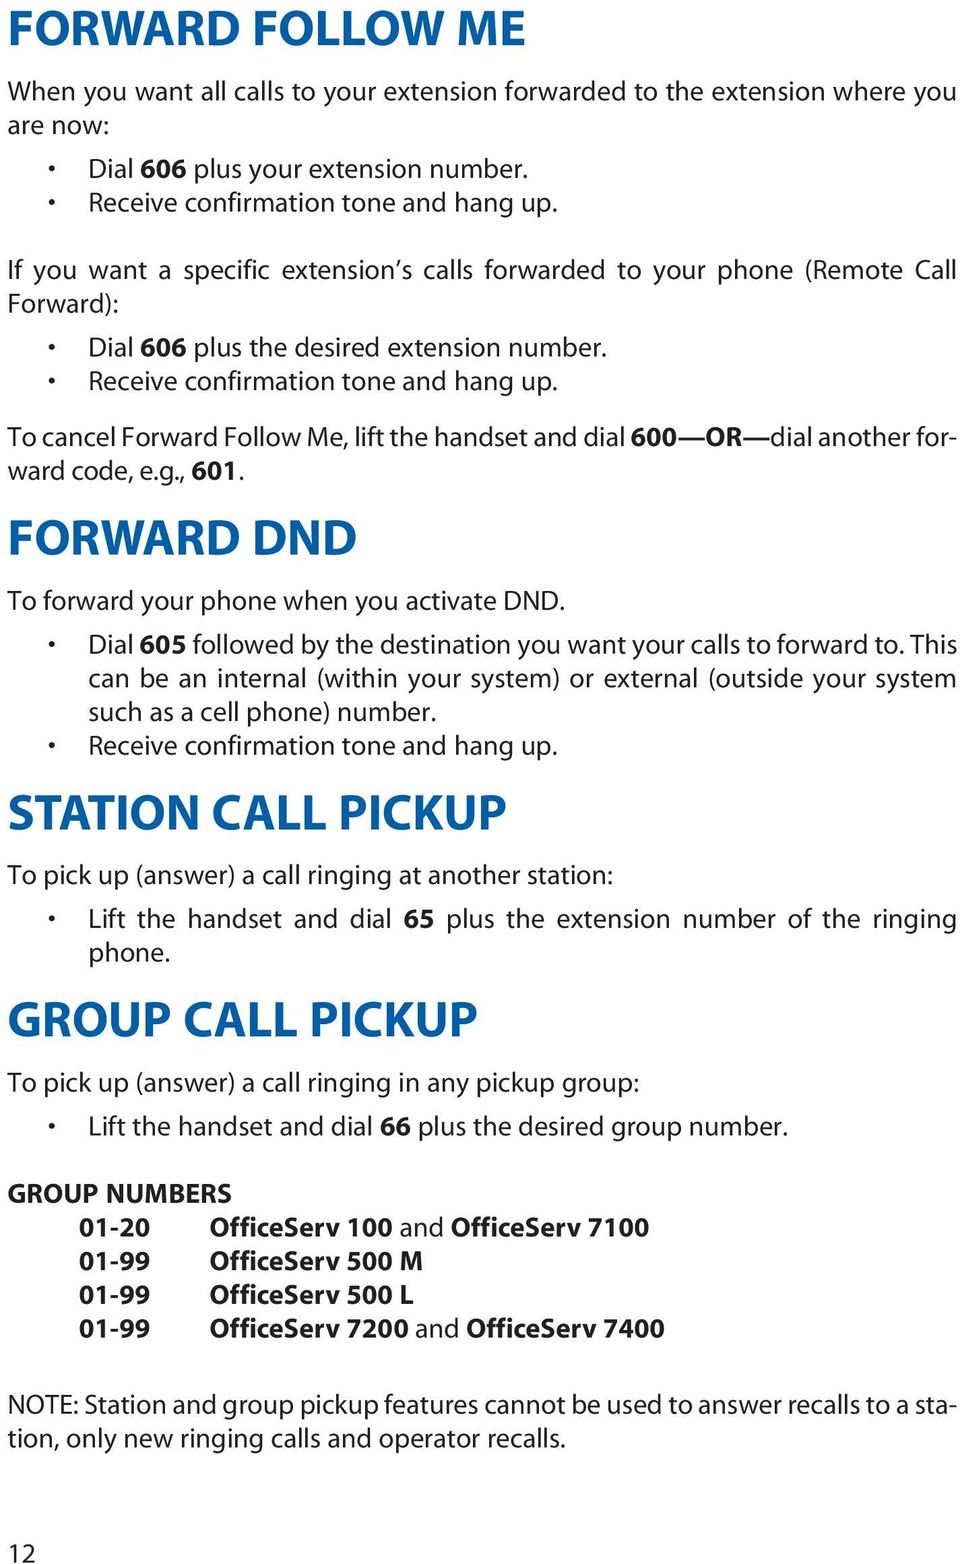 To cancel Forward Follow Me, lift the handset and dial 600 OR dial another forward code, e.g., 601. FORWARD DND To forward your phone when you activate DND.